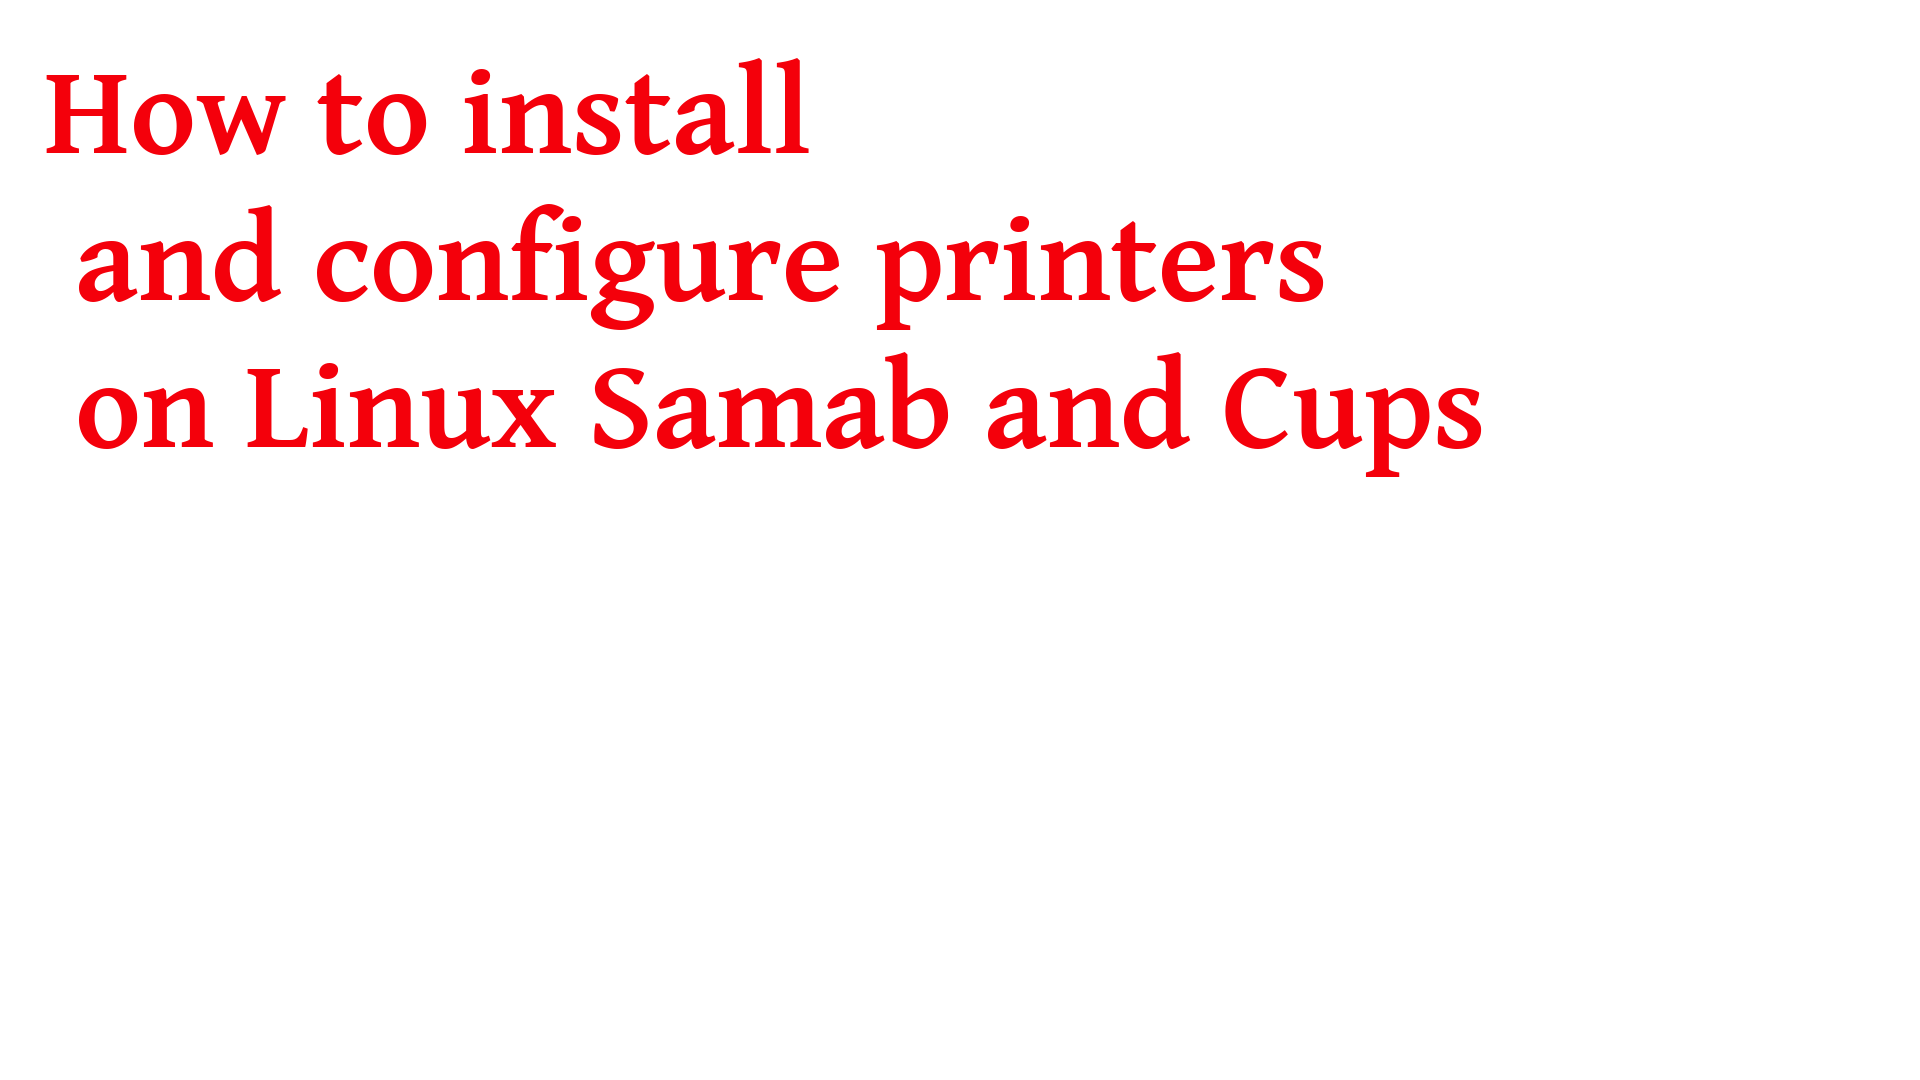 How to install and configure printers on Linux Samba and Cups 2020